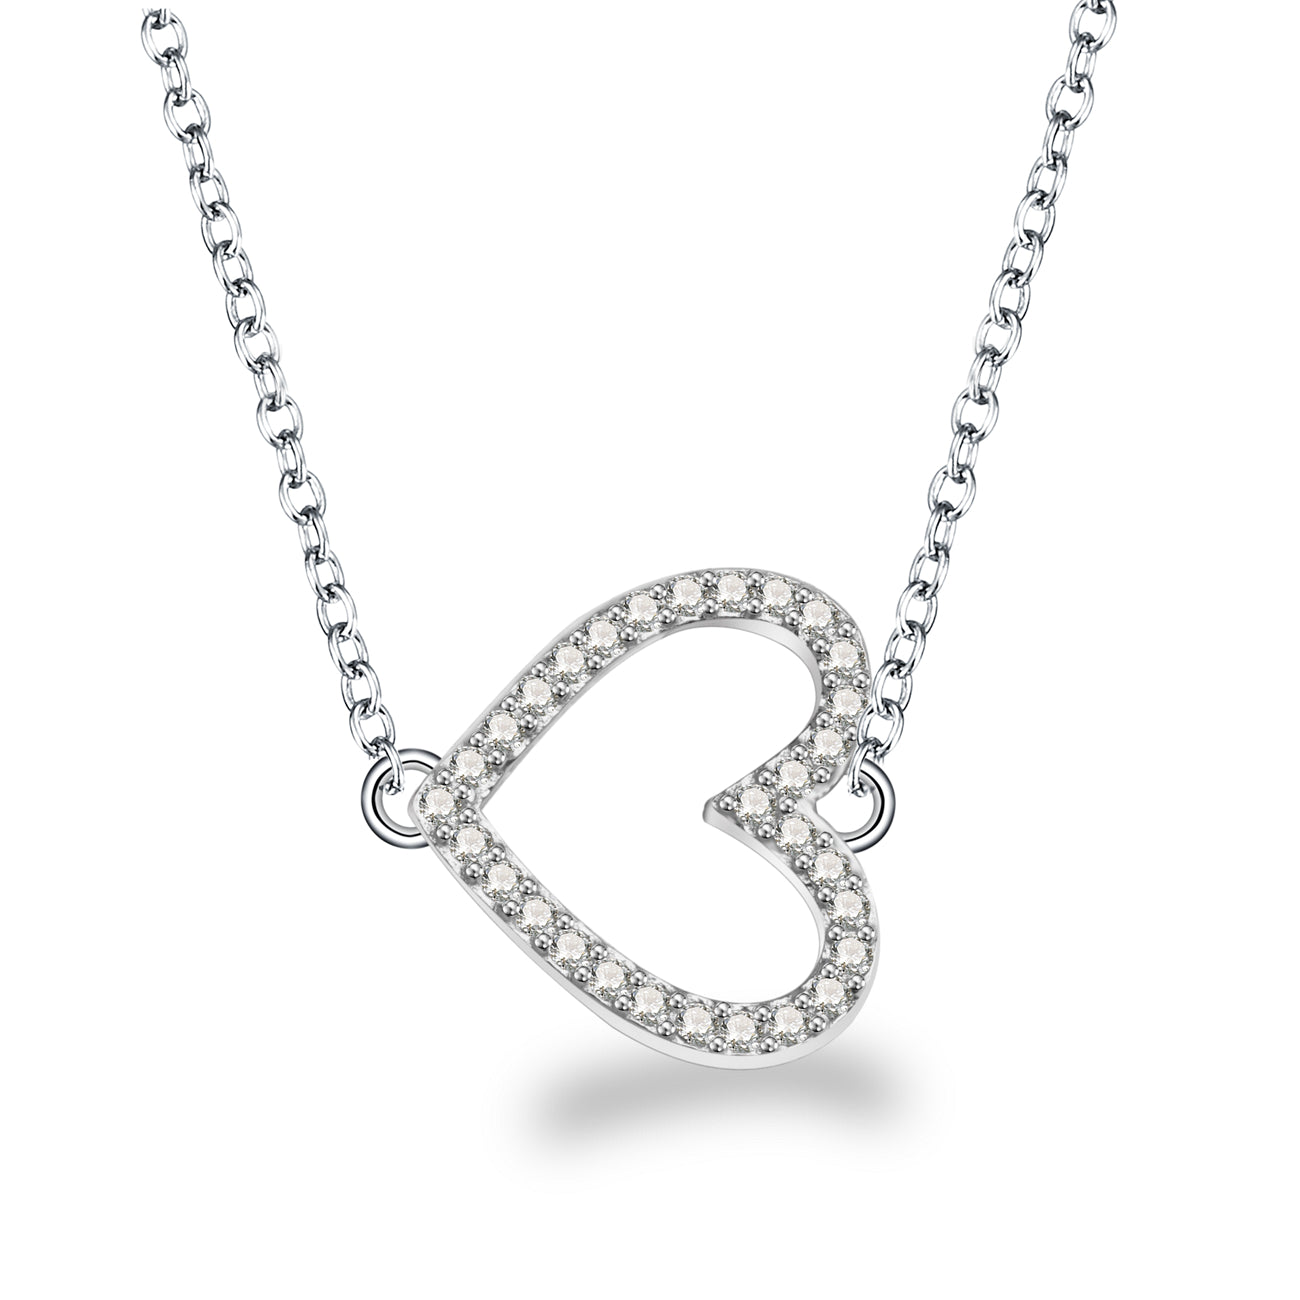 SHERRIE HEART NECKLACE